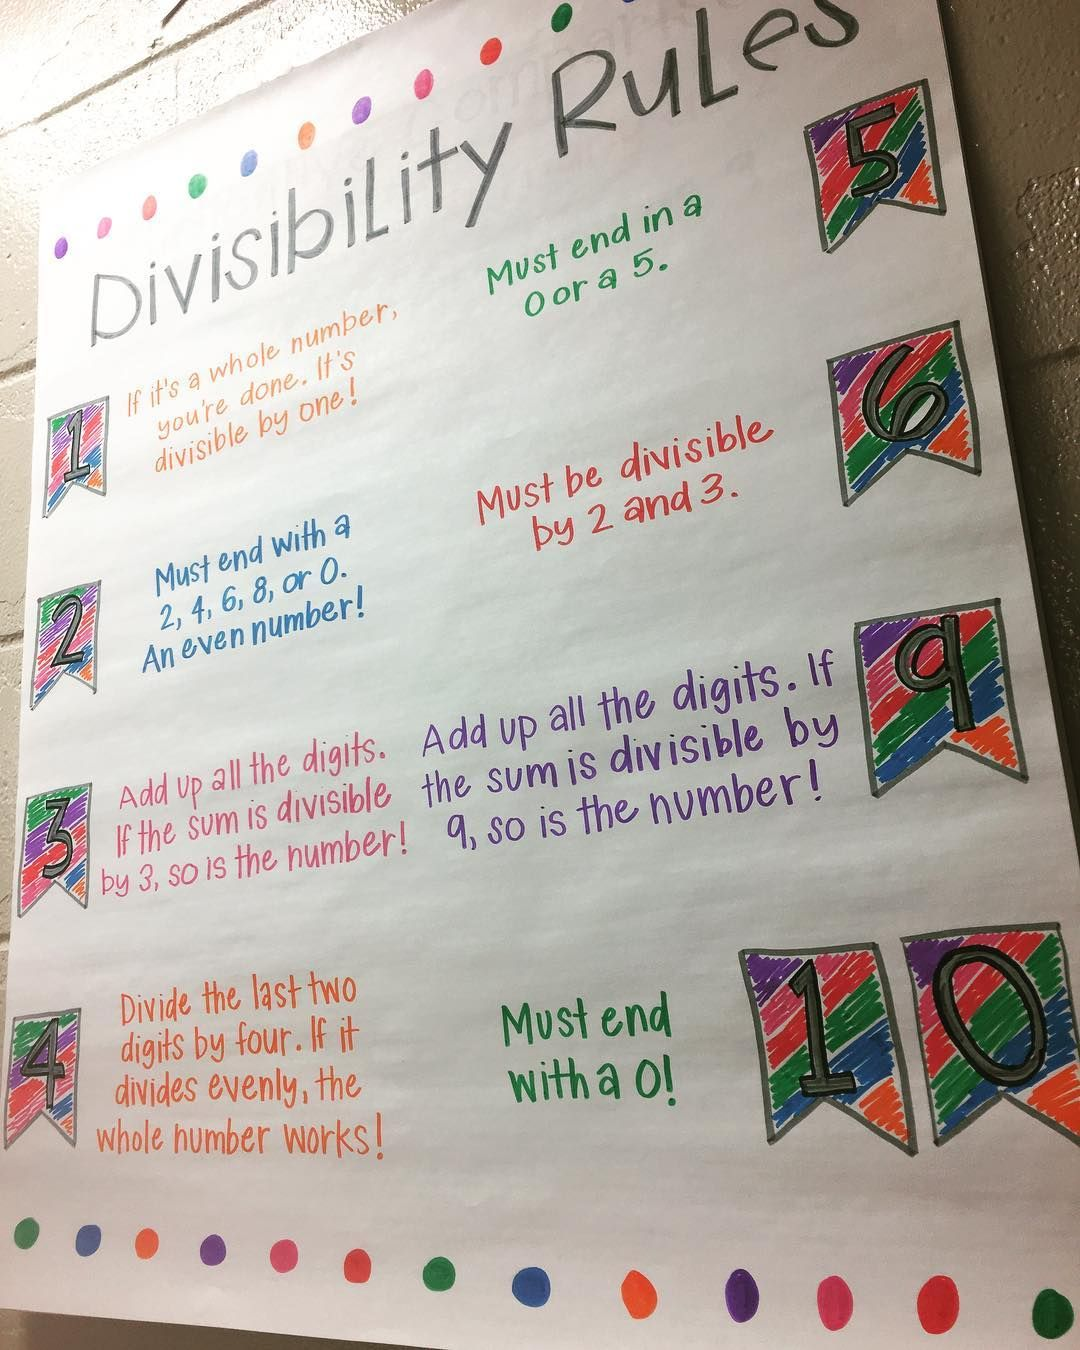 Cassie Steuart On Instagram Divisibility Rules